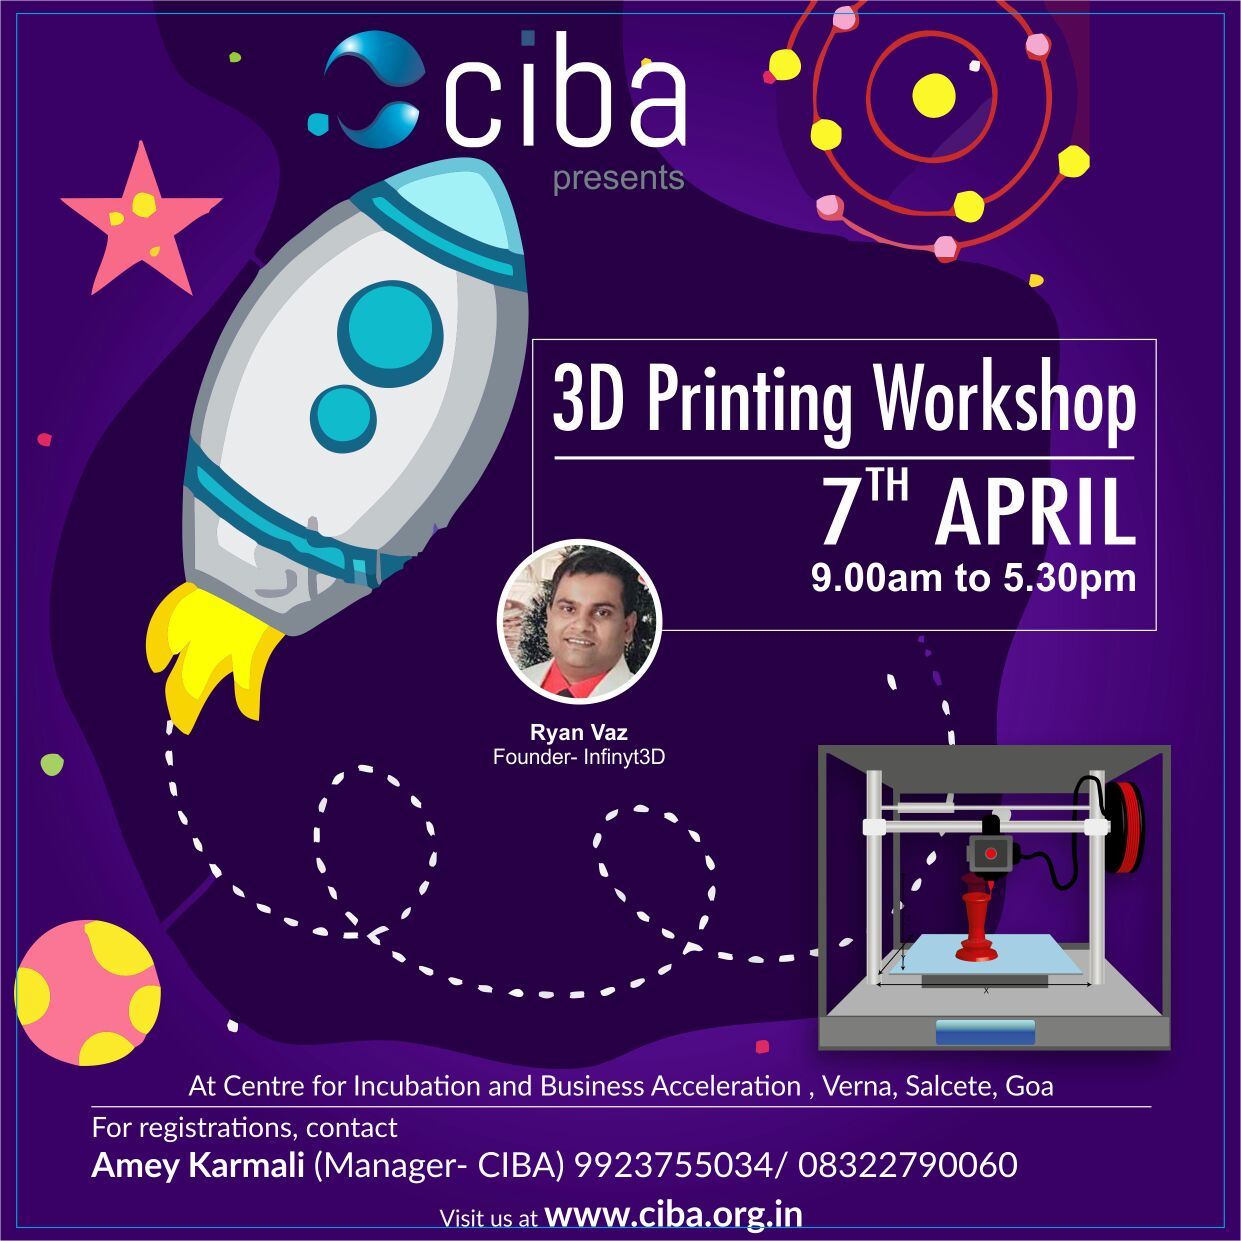 CIBA - 3D Printing Workshop